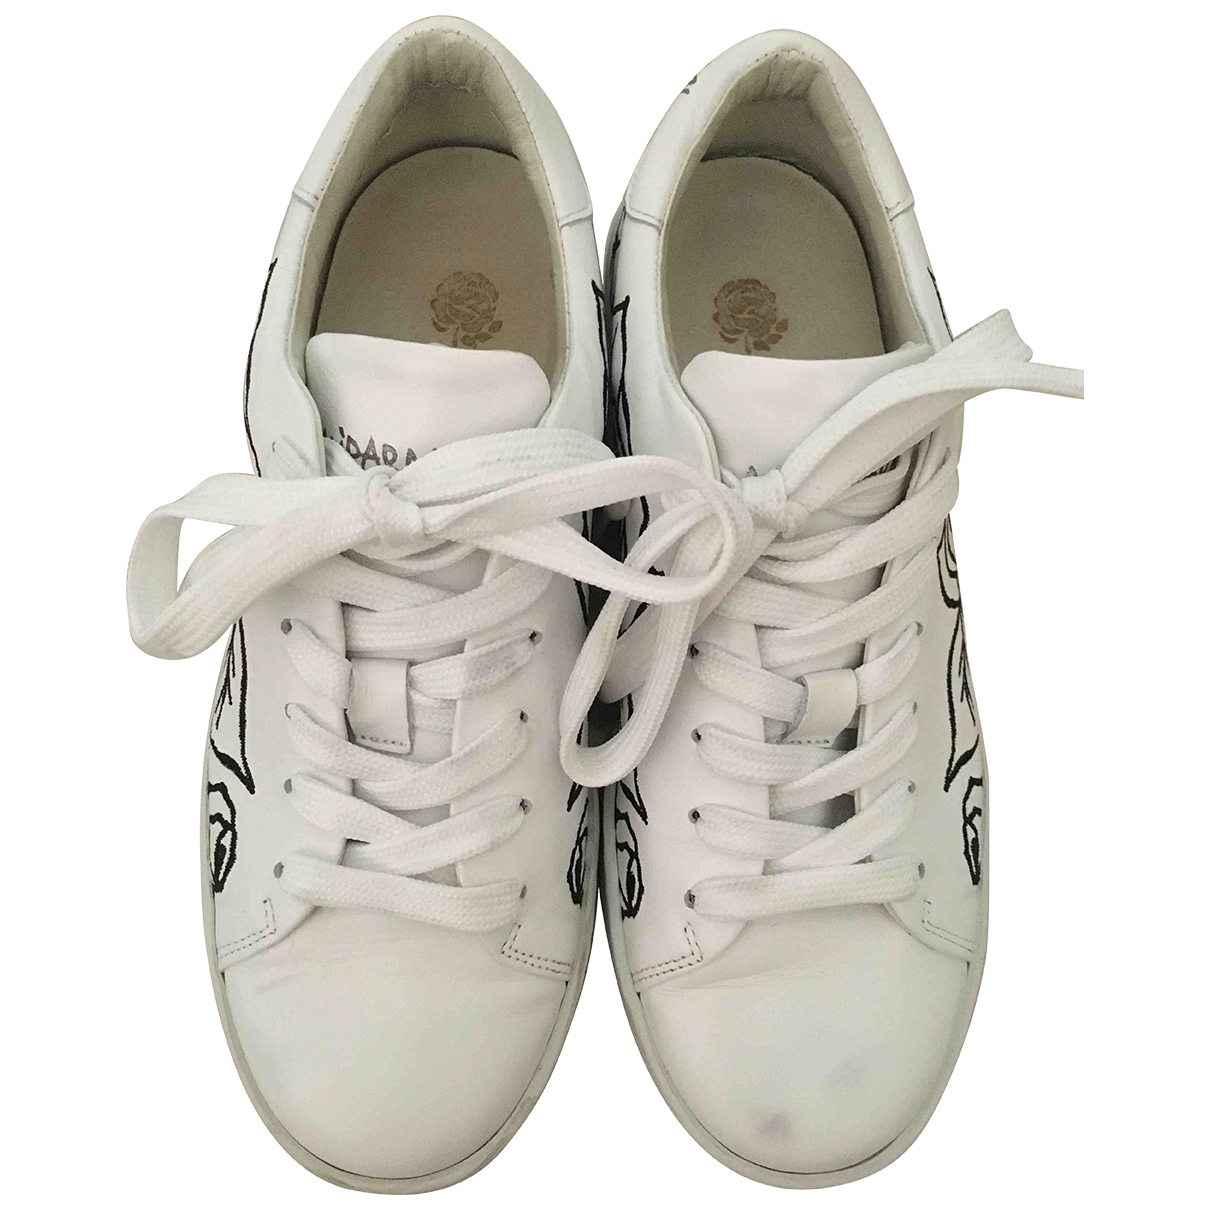 Maliparmi \N White Leather Trainers for Women 36 IT